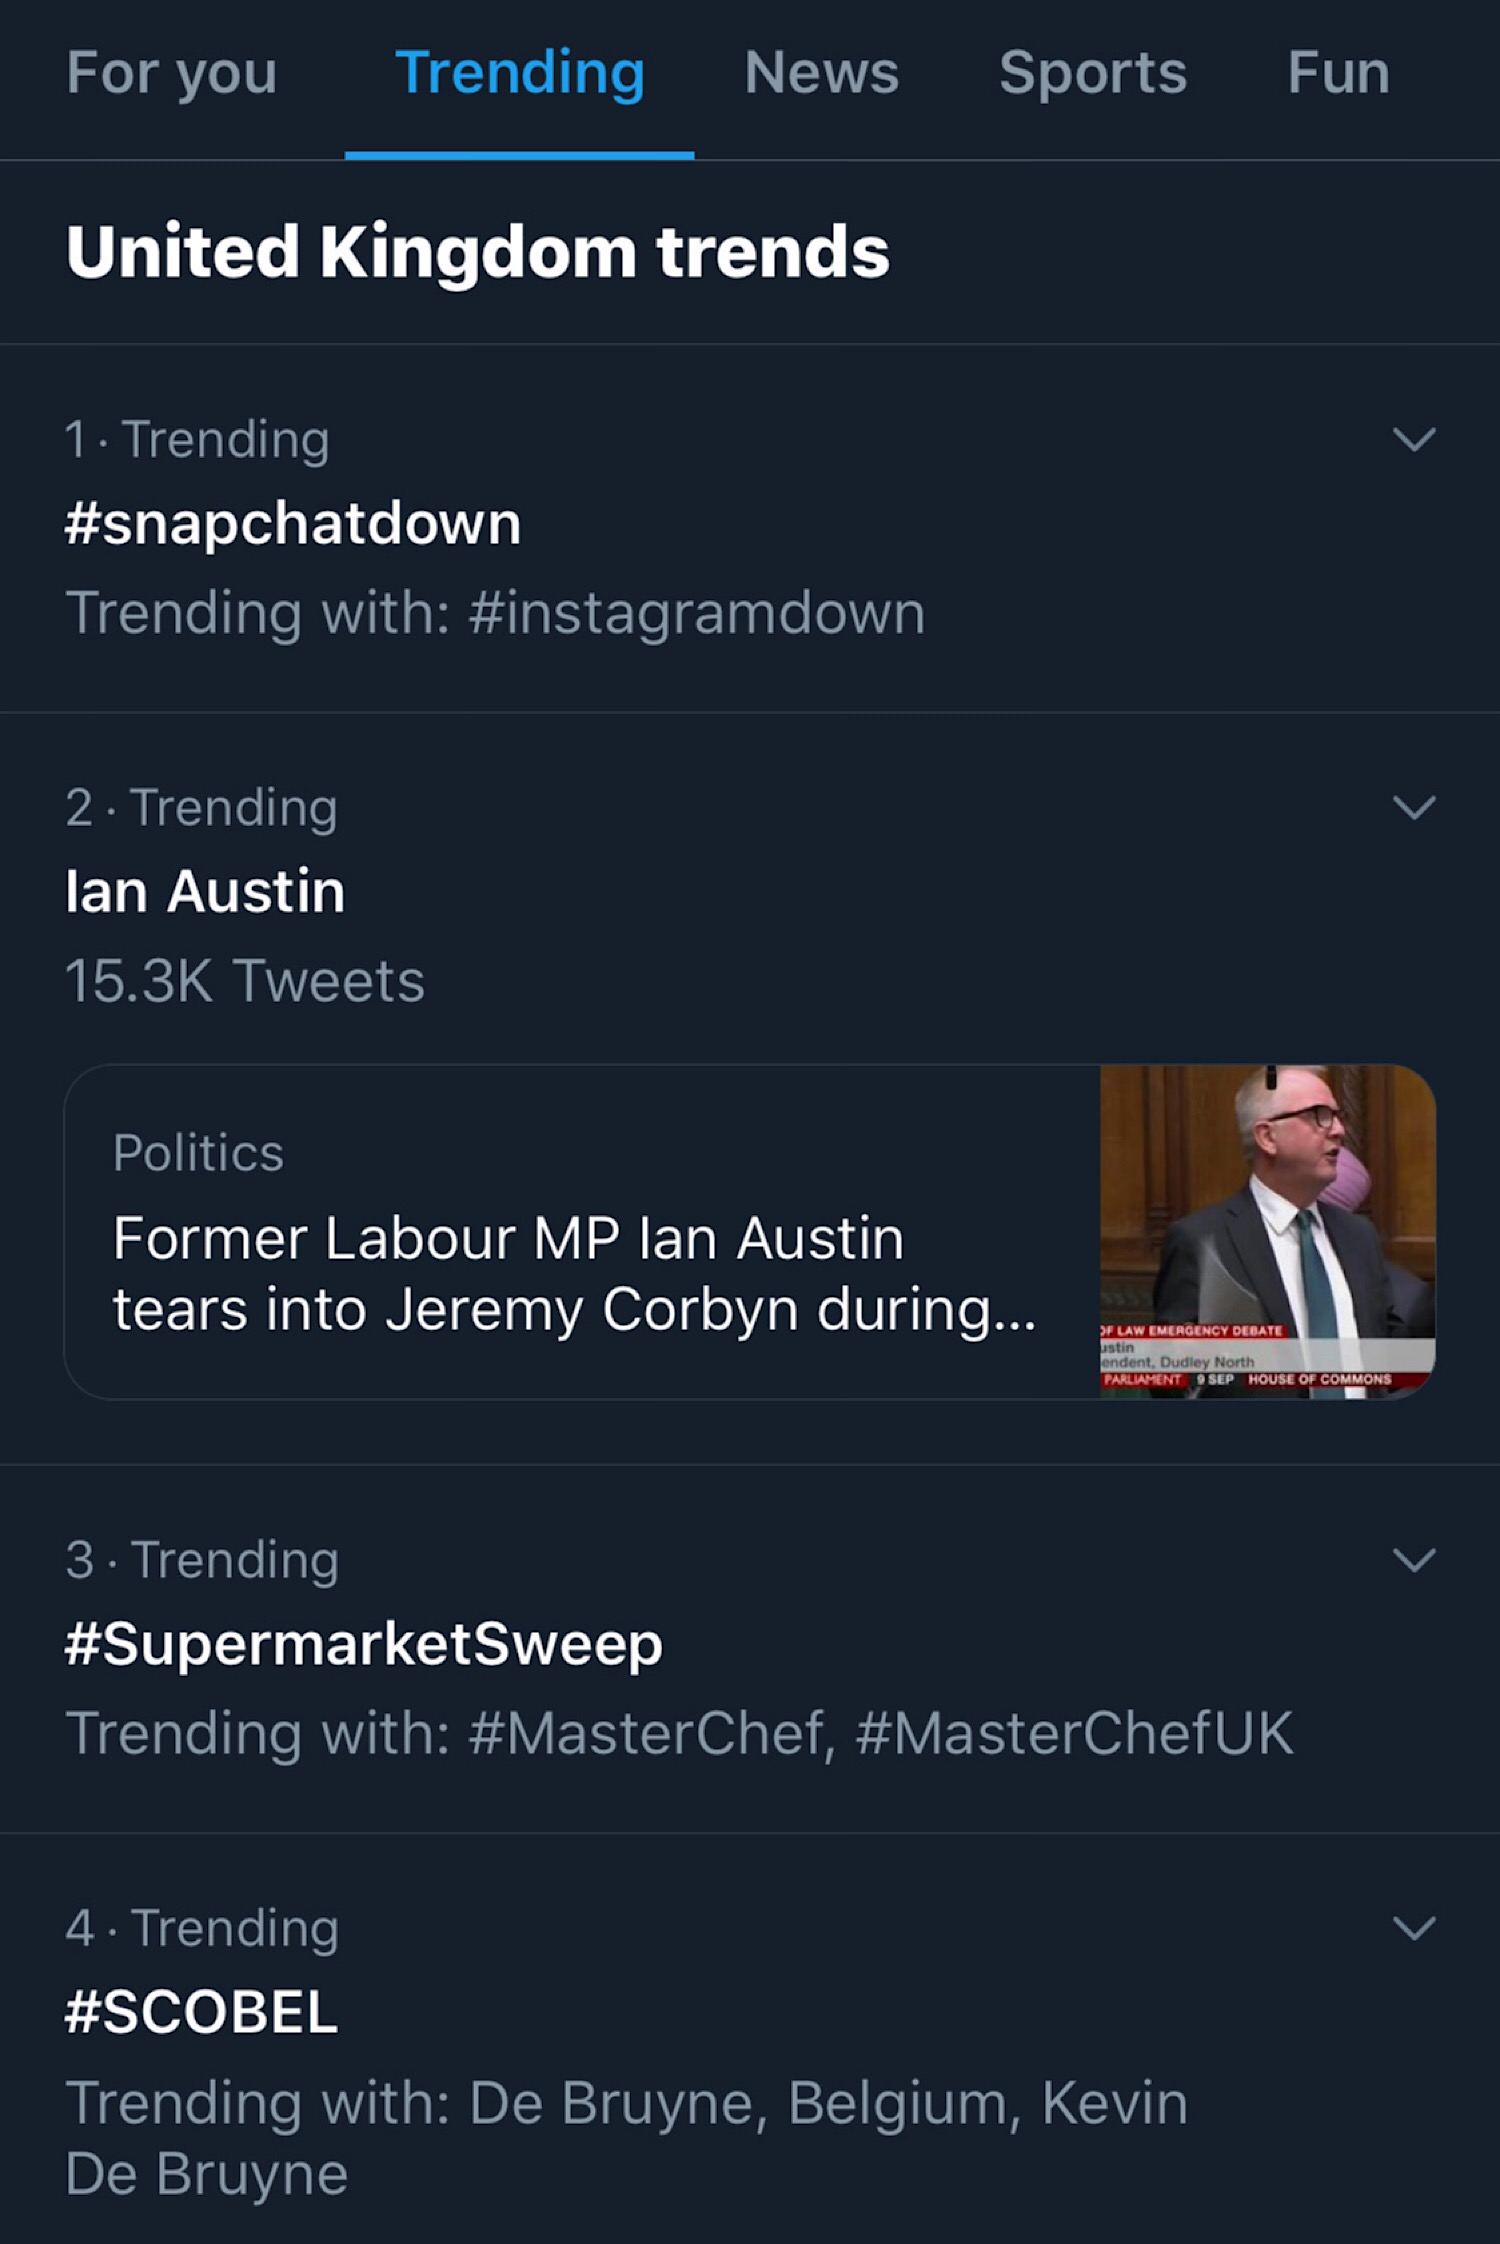 #snapchatdown trending number one on Twitter in the United Kingdom.